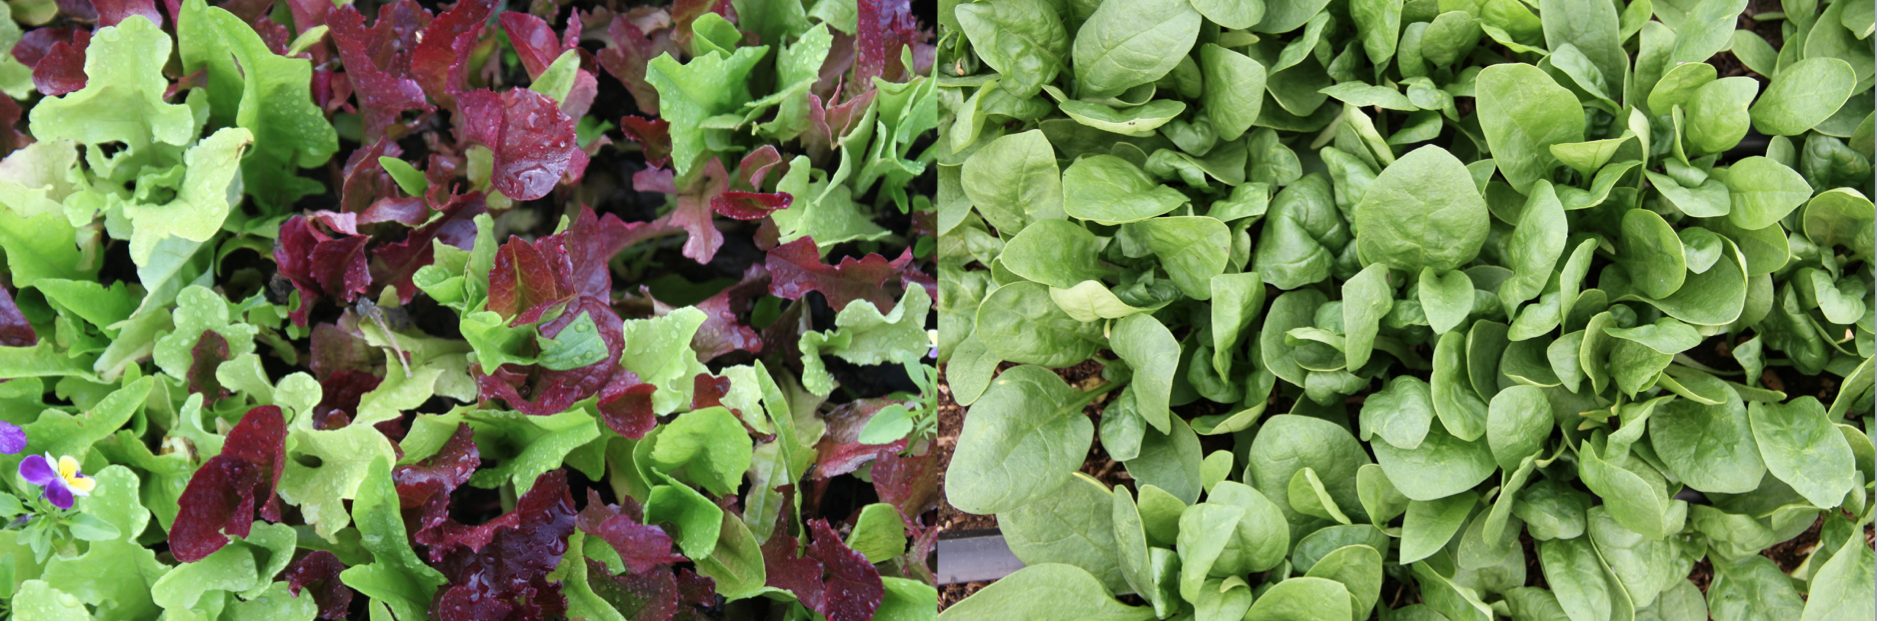 Bring green baby spinach and multi-colored baby lettuce